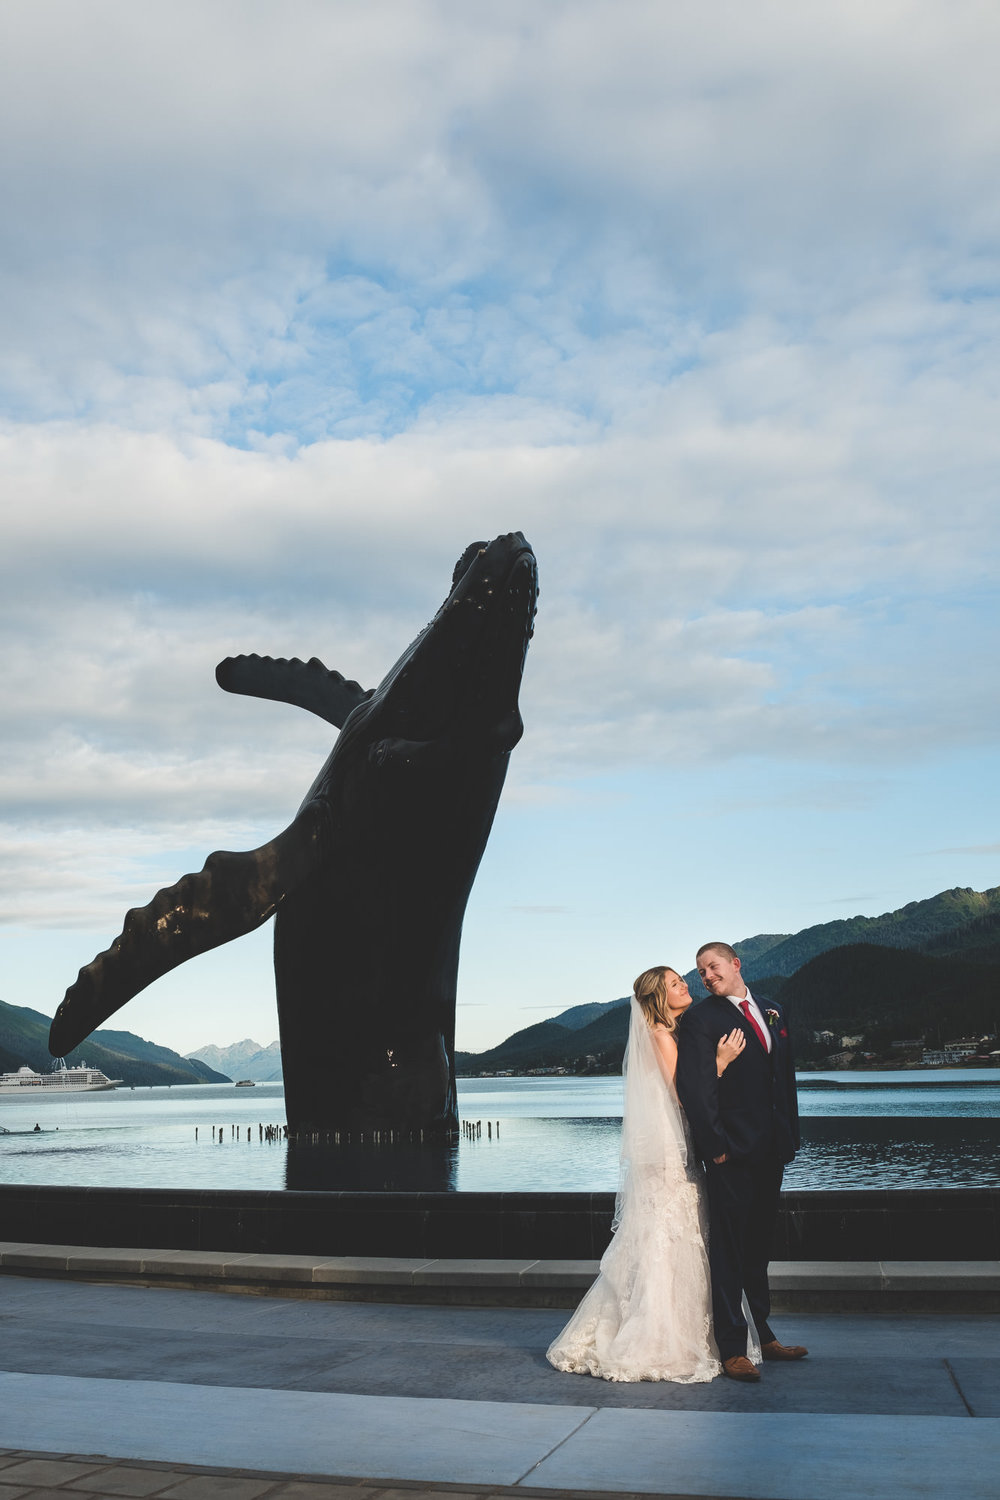 bride-groom-whale-juneau-alaska-fountian